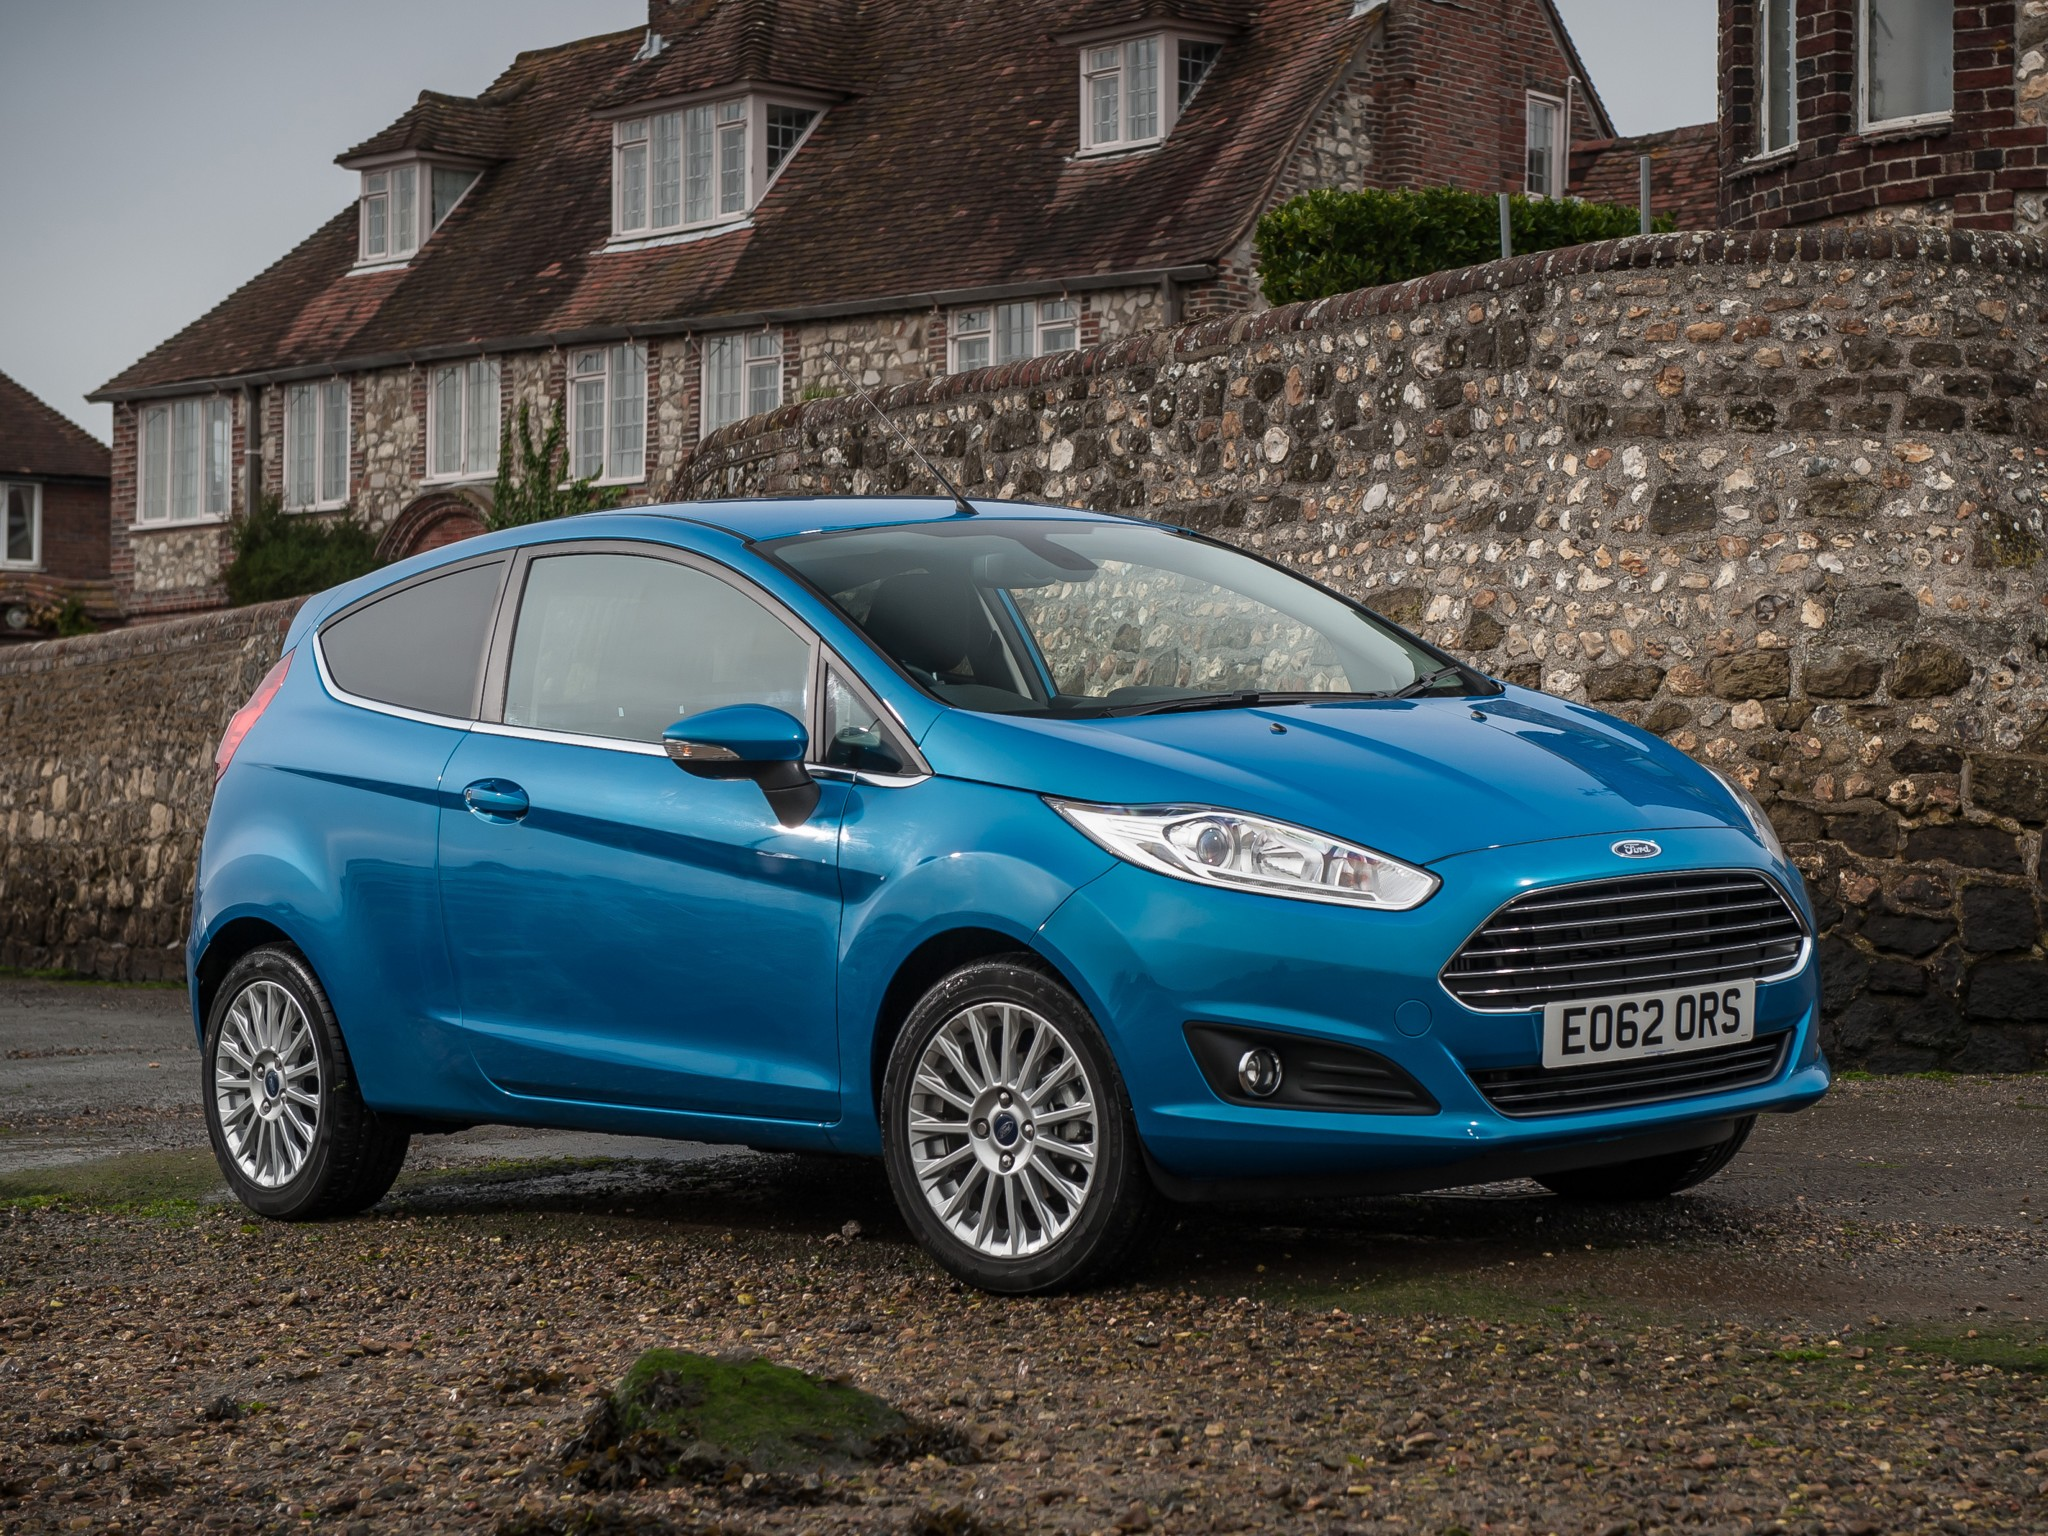 ford fiesta 3 doors specs 2013 2014 2015 2016 2017 autoevolution. Black Bedroom Furniture Sets. Home Design Ideas